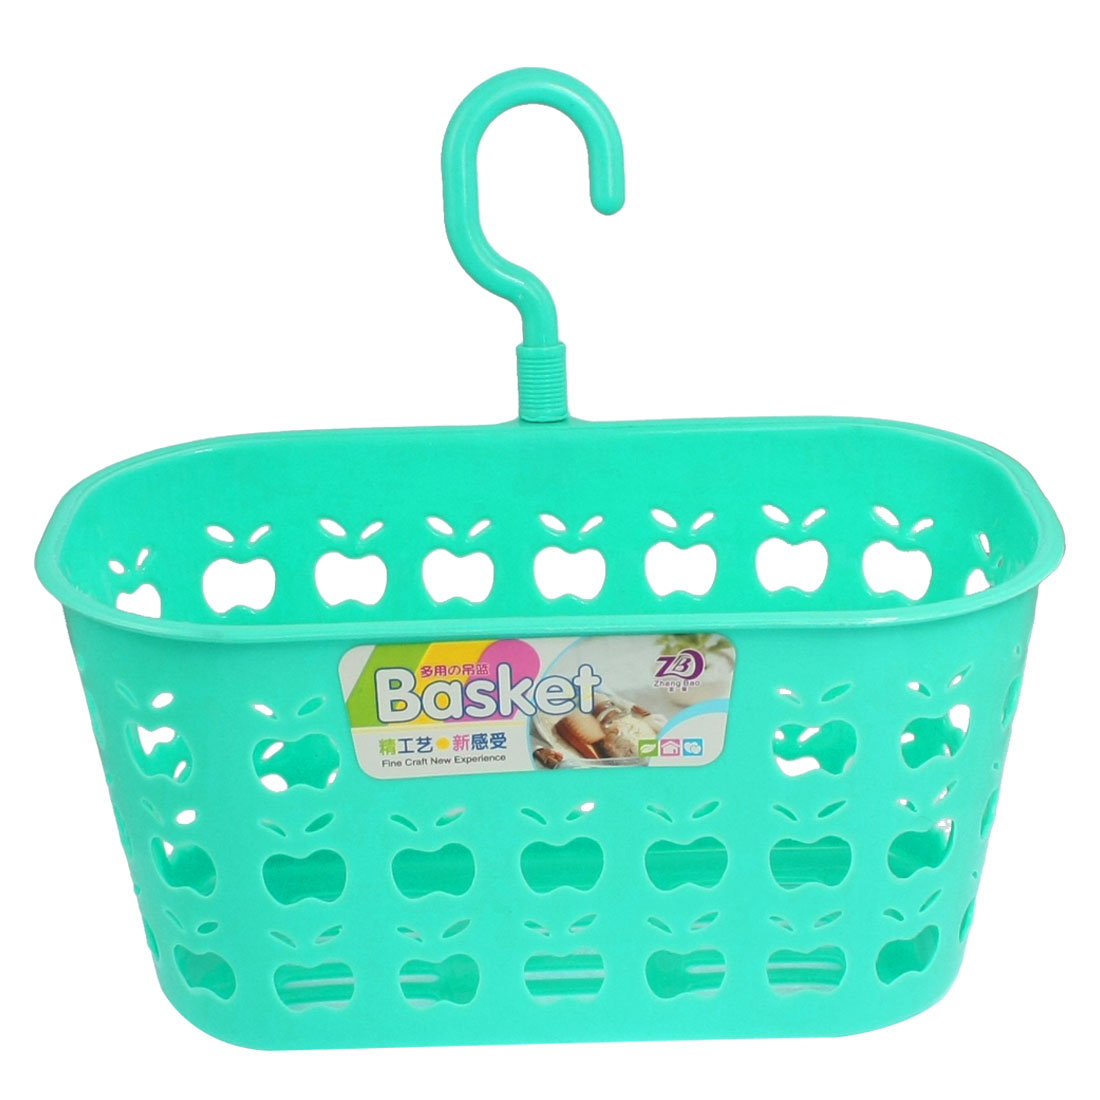 Turquoise Plastic Perforated Apple Shape Pattern Single Hook Hanging Basket